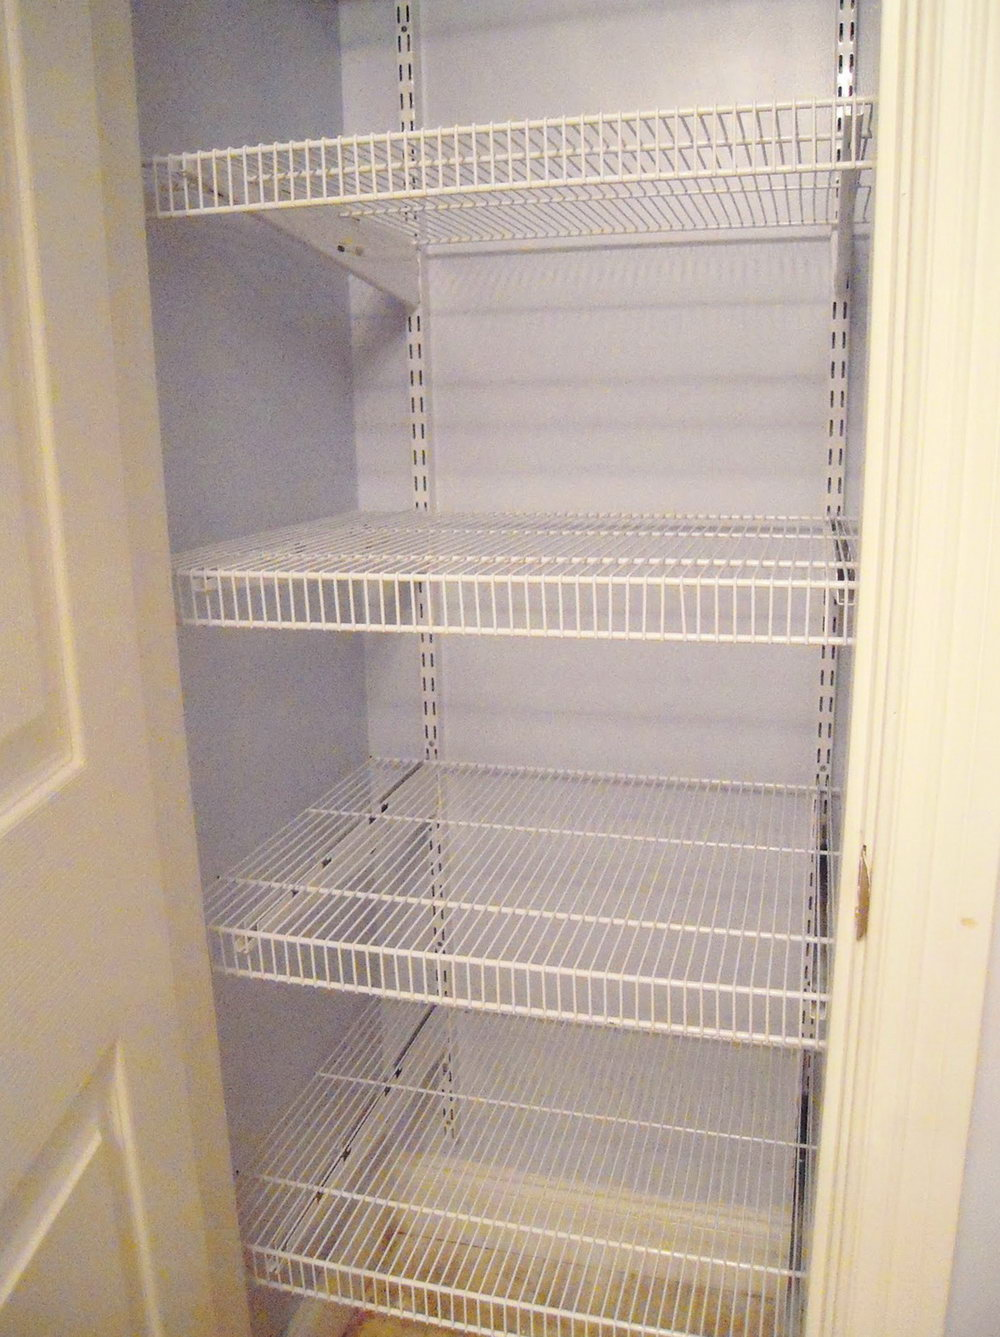 Linen Closet Shelves Ideas